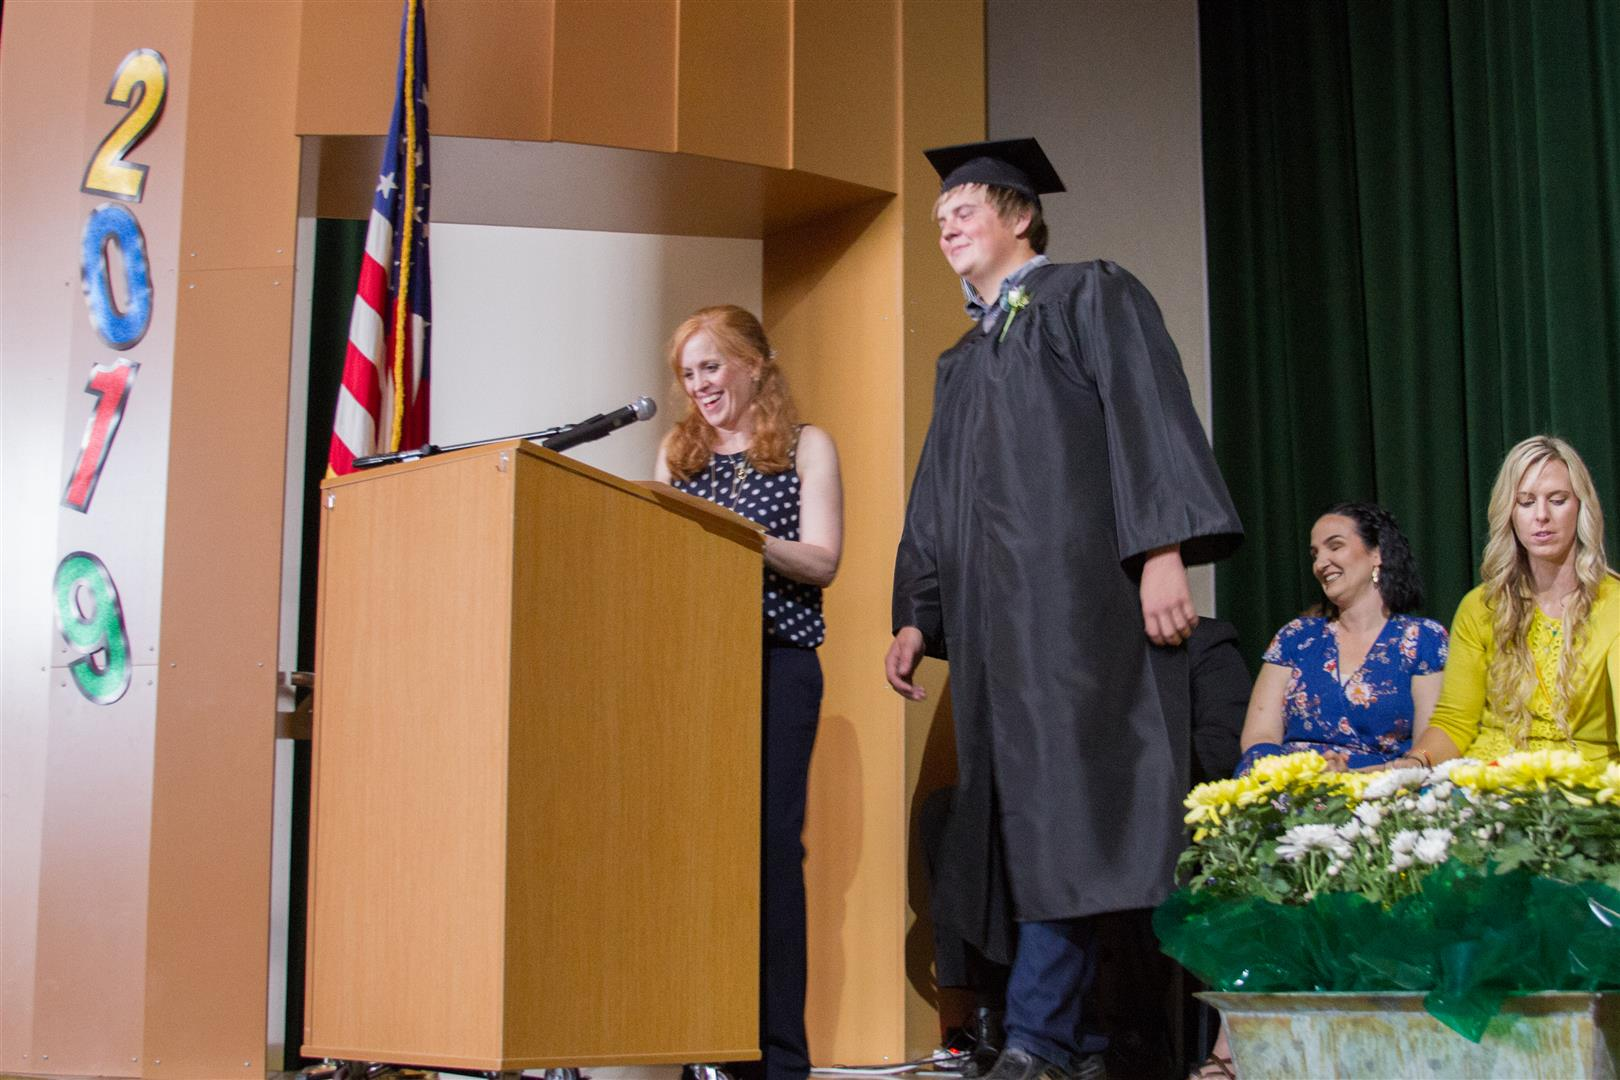 1560449995-team-high-class-of-2019-commencement-17__large_